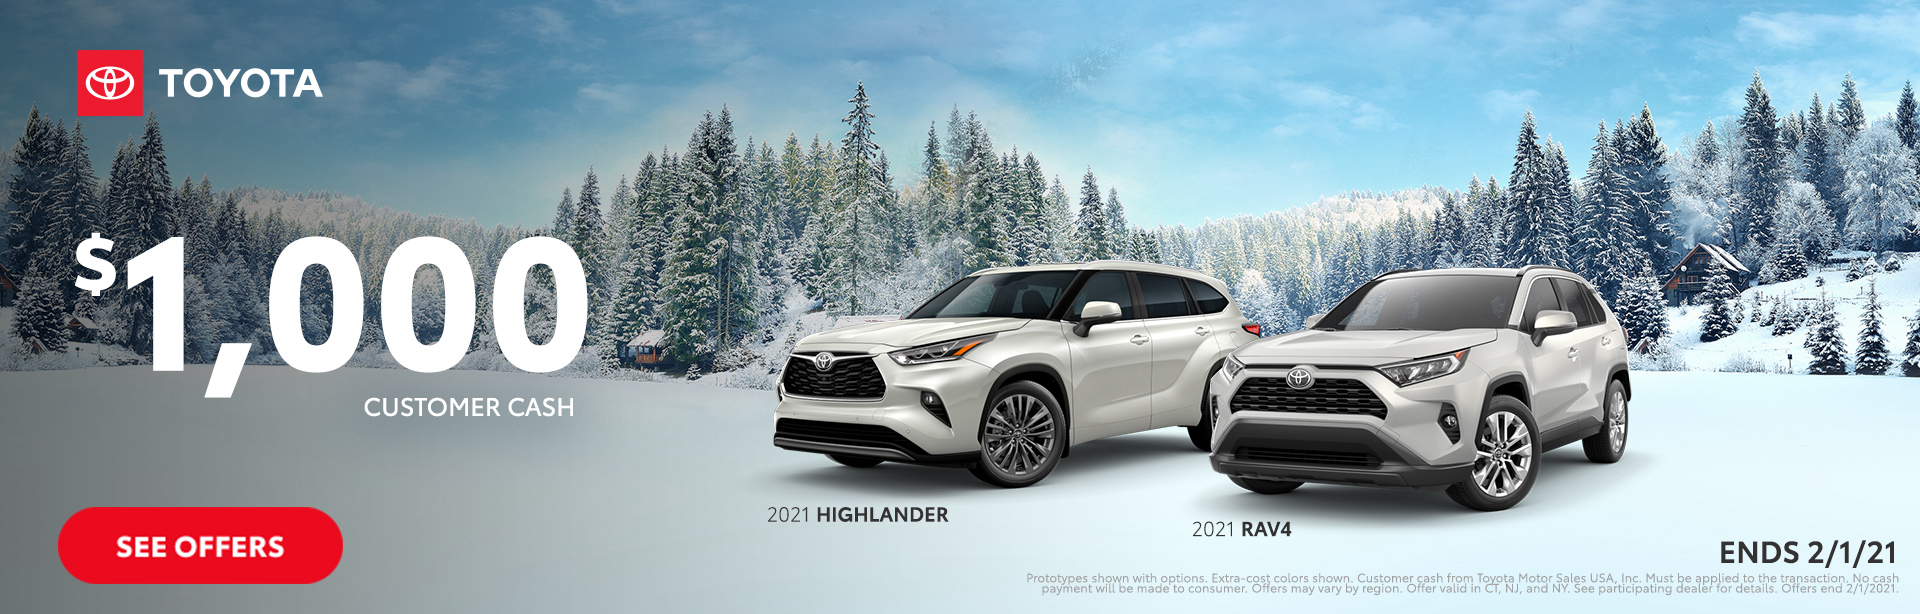 01-21_01_New York-January-2021-NY-Highlander-RAV4---Asset-trial_1920x614_aafc_Highlander-RAV4_R_xta.jpeg